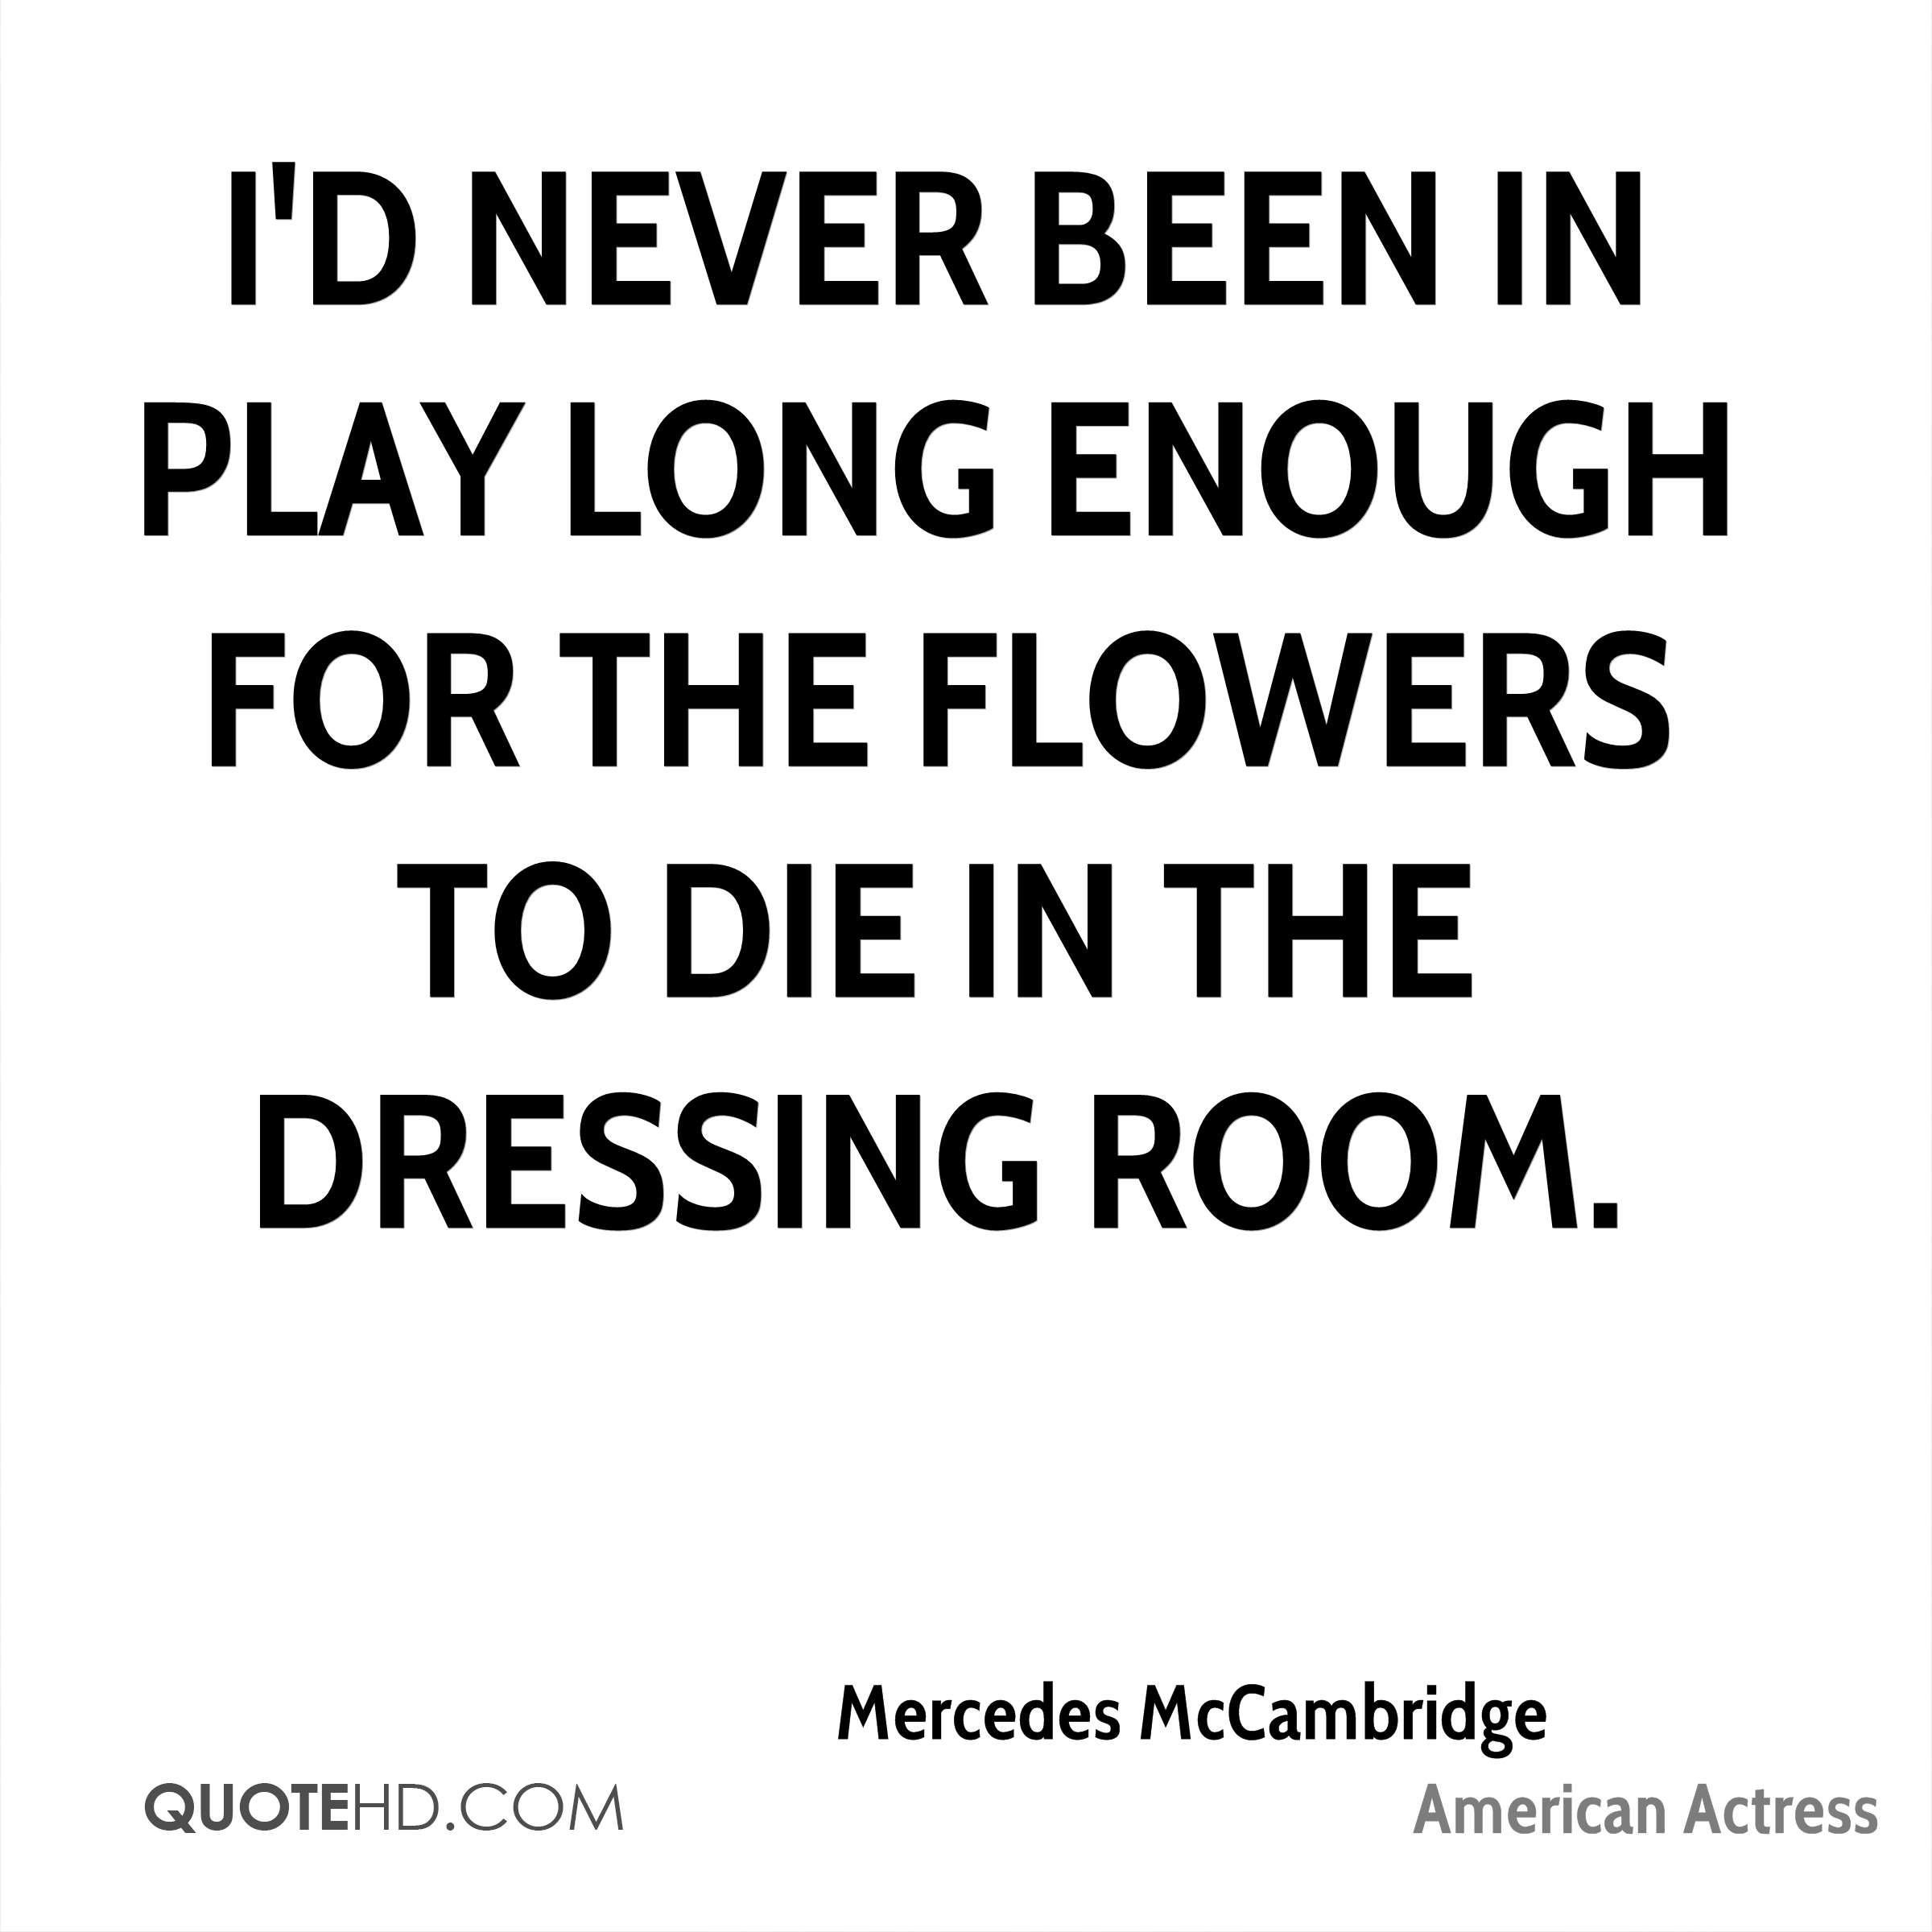 I'd never been in play long enough for the flowers to die in the dressing room.